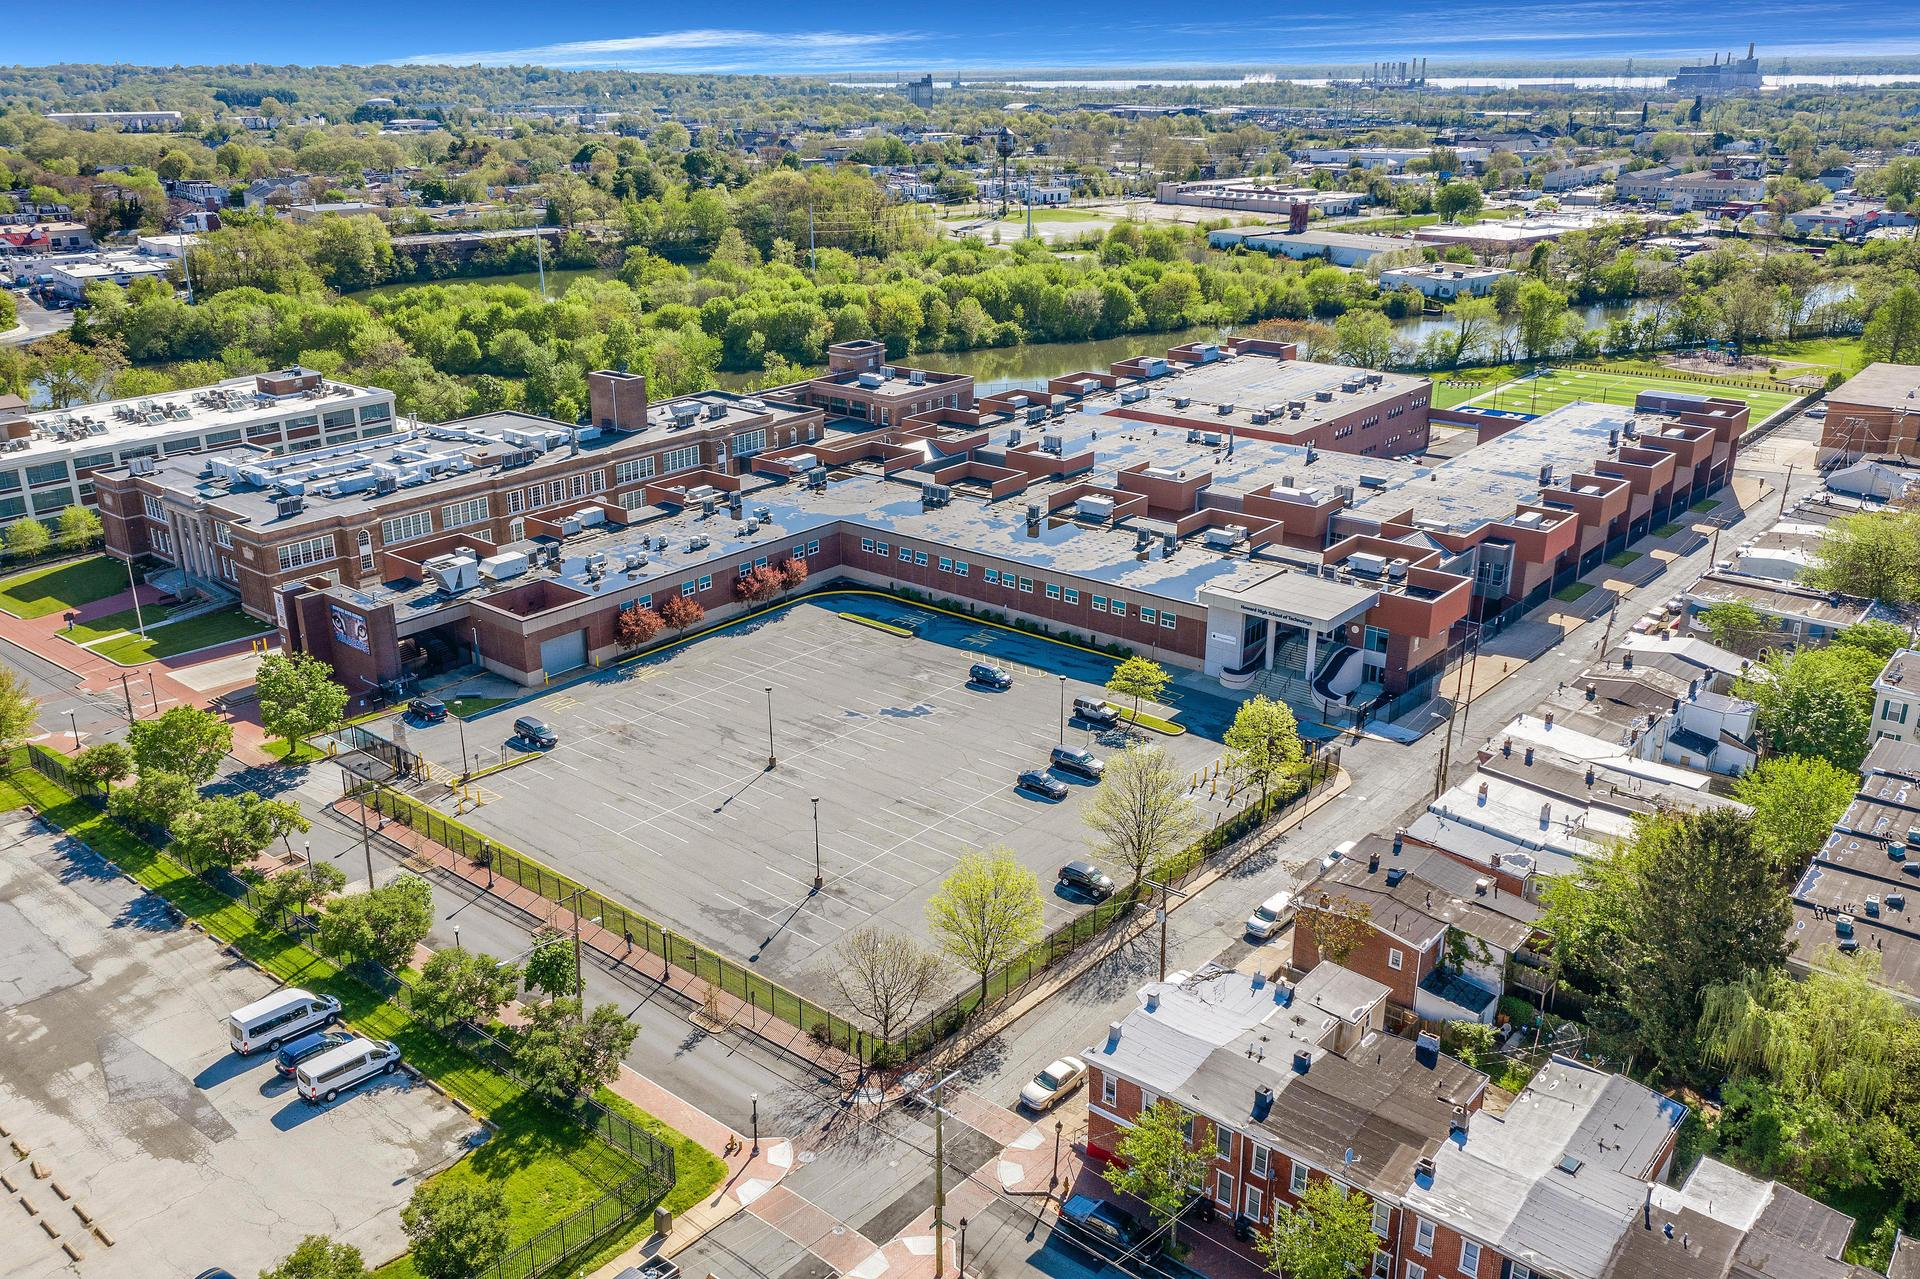 Drone View of Howard School